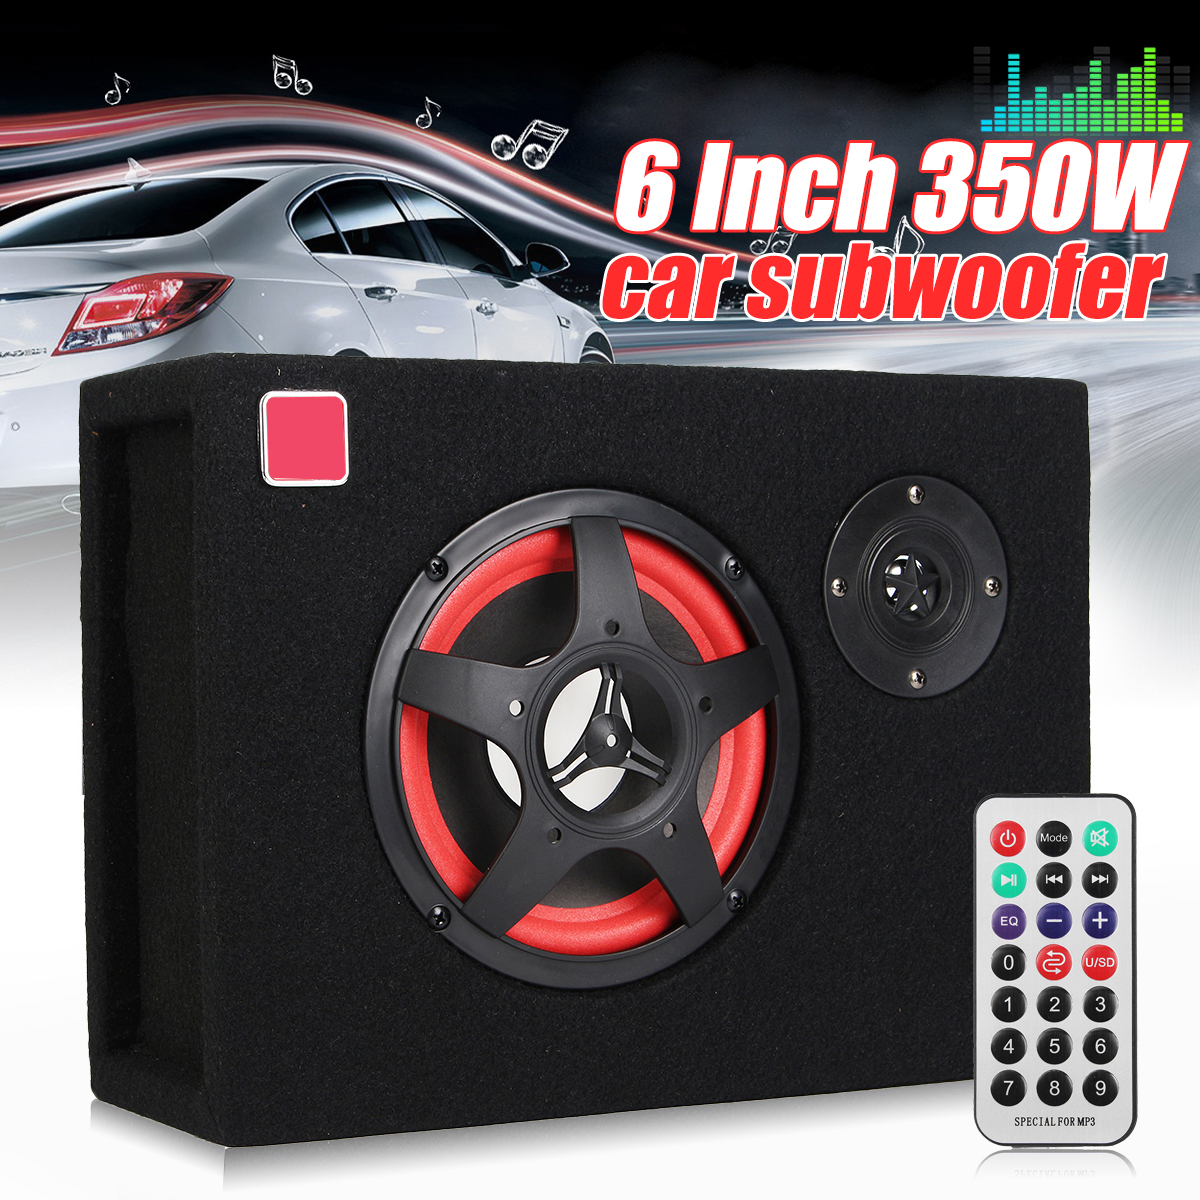 6 Inch Compact Car Active Amplified Under Seat Powered Subwoofer Bass Speaker 350W Car Subwoofer Speaker Audio Stereo